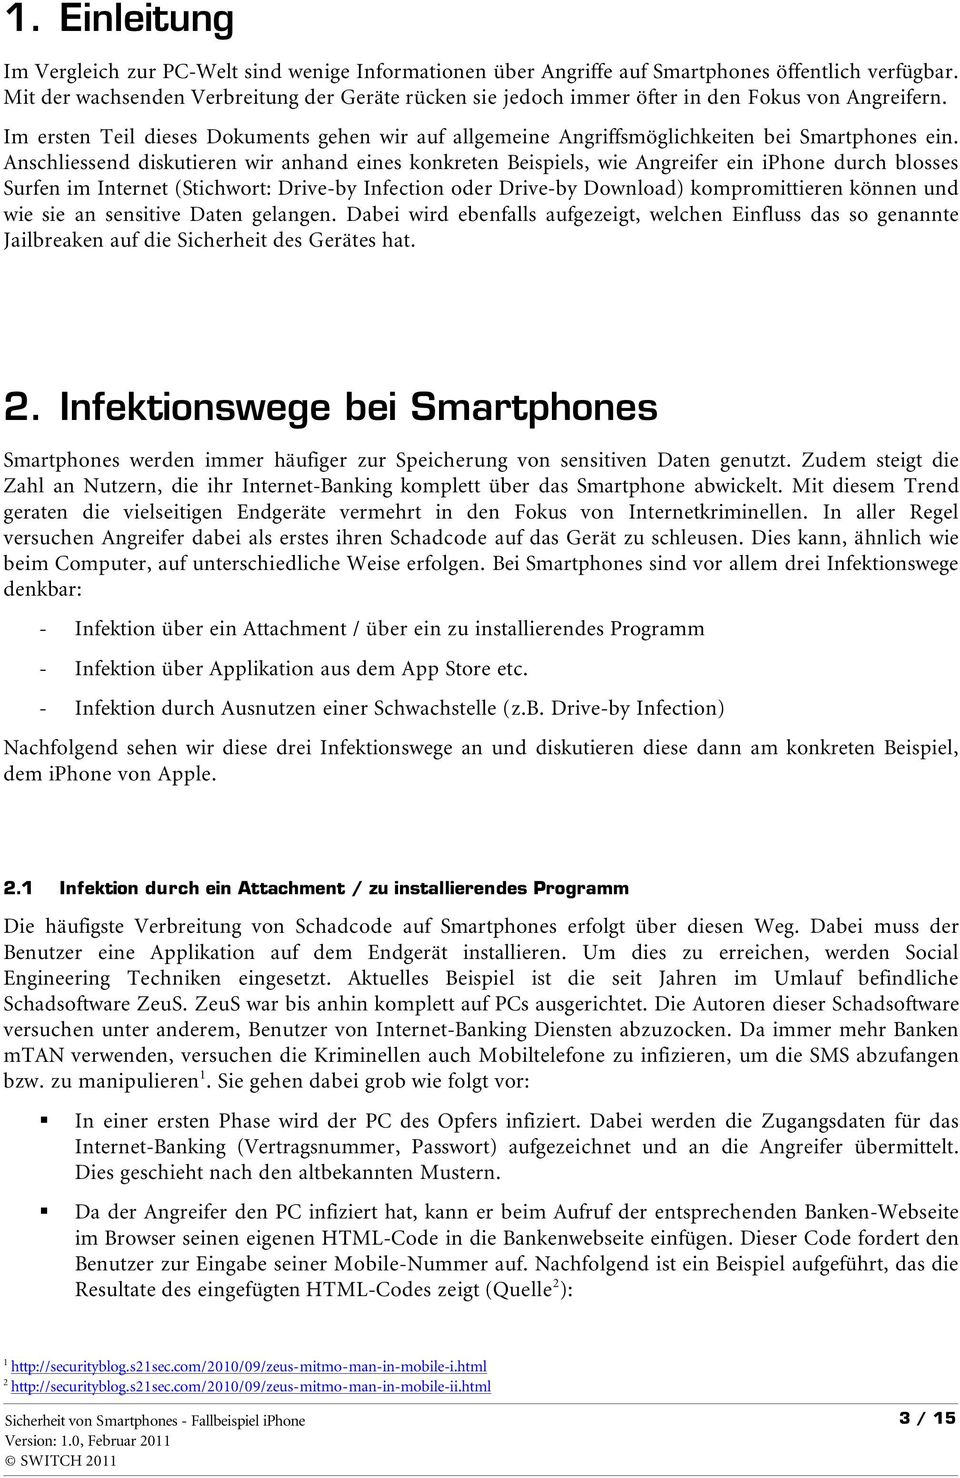 Anschliessend diskutieren wir anhand eines konkreten Beispiels, wie Angreifer ein iphone durch blosses Surfen im Internet (Stichwort: Drive-by Infection oder Drive-by Download) kompromittieren können